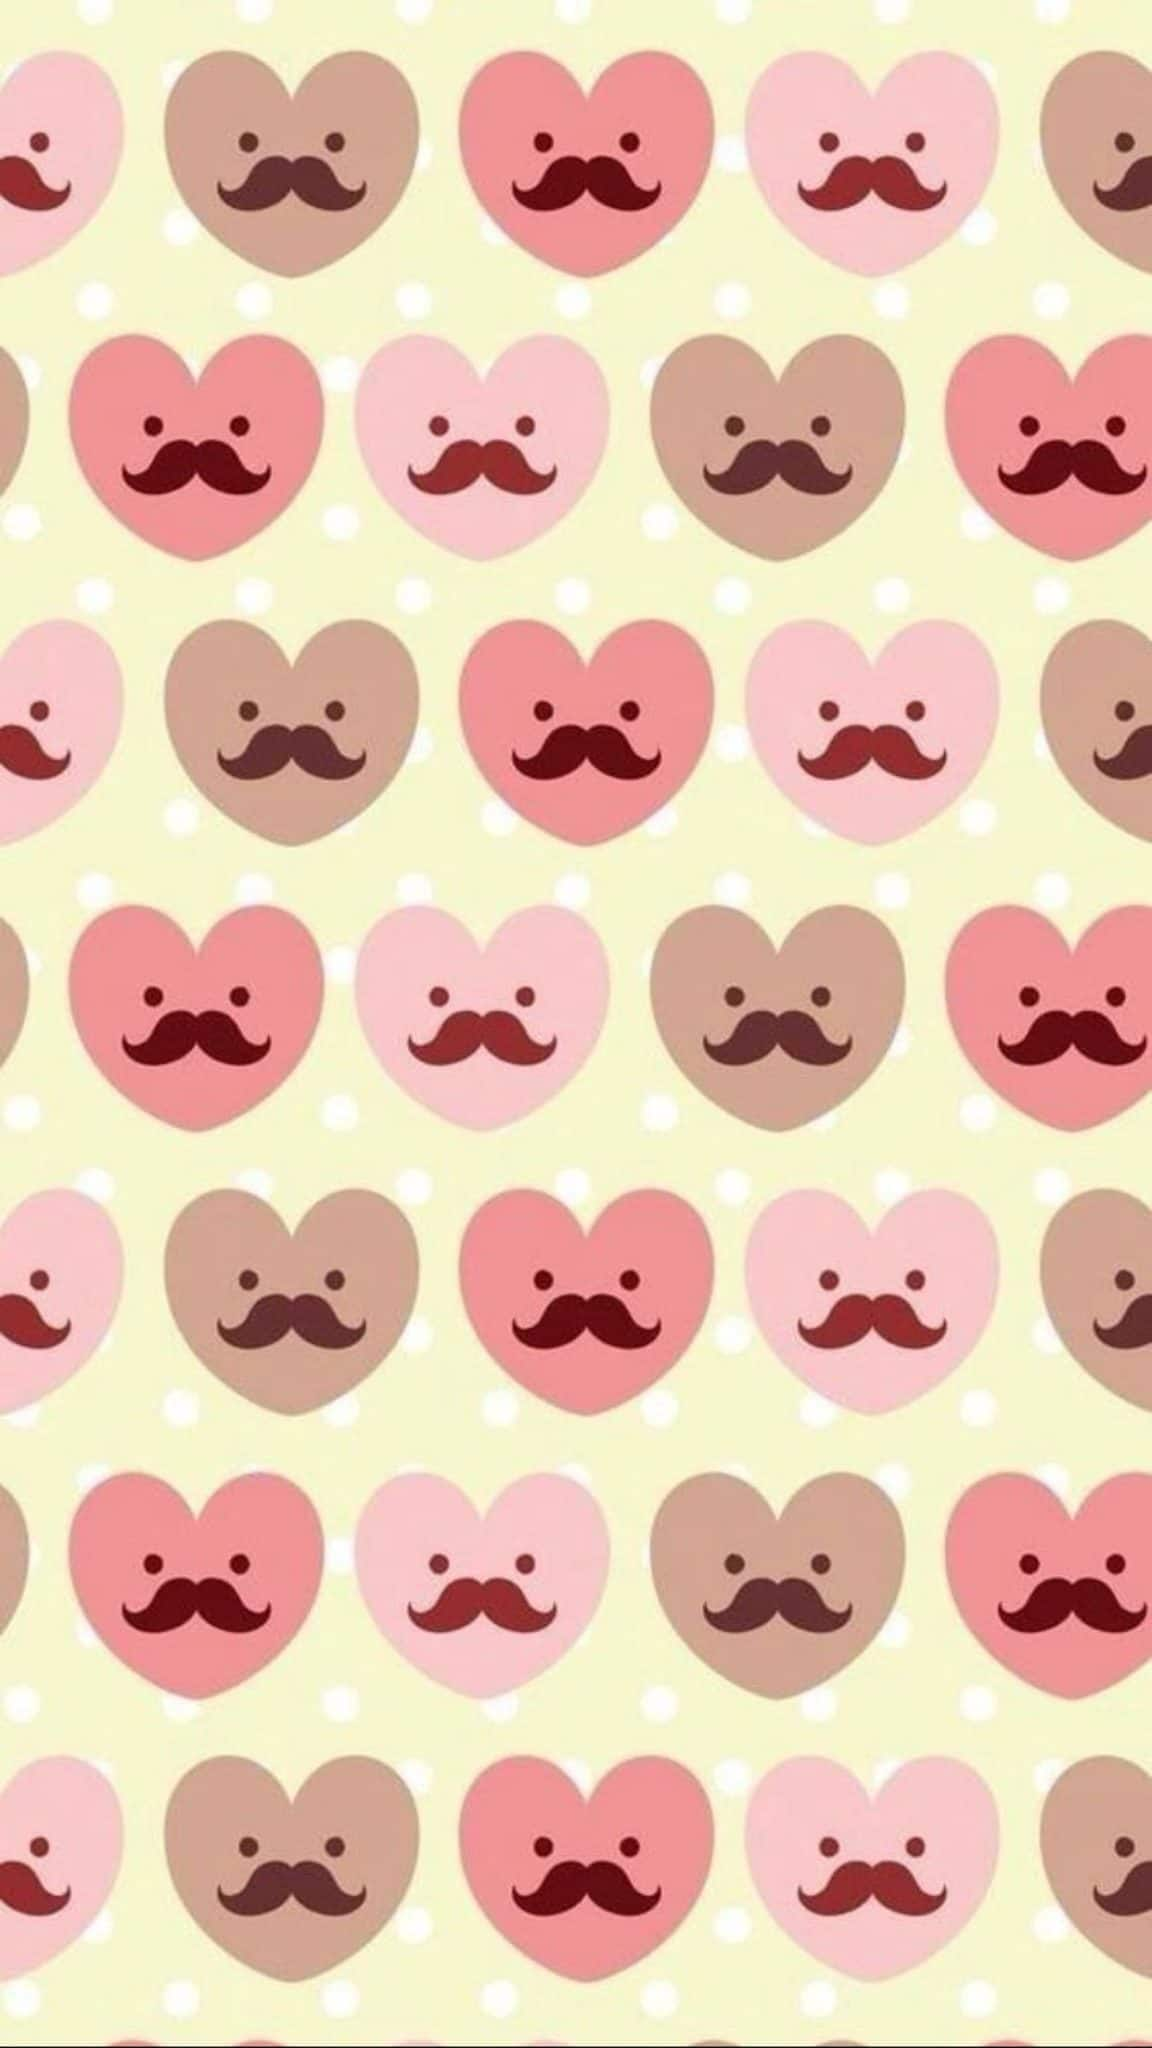 17 awesome mustache wallpapers for phones and walls men s stylists mustache wallpapers for iphone 6 plus